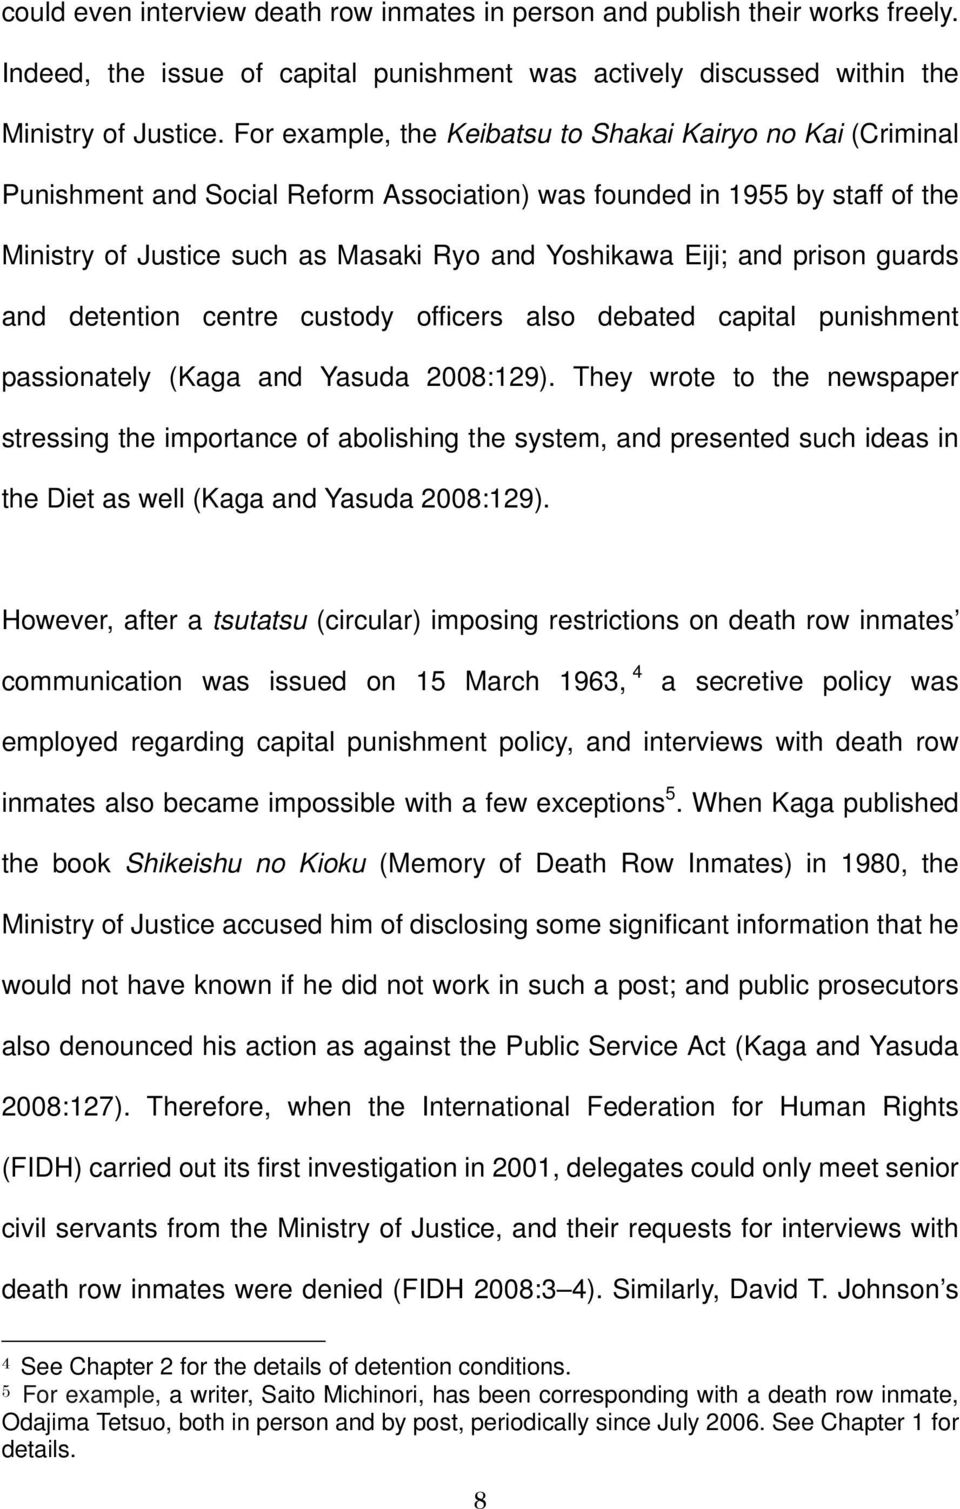 and prison guards and detention centre custody officers also debated capital punishment passionately (Kaga and Yasuda 2008:129).